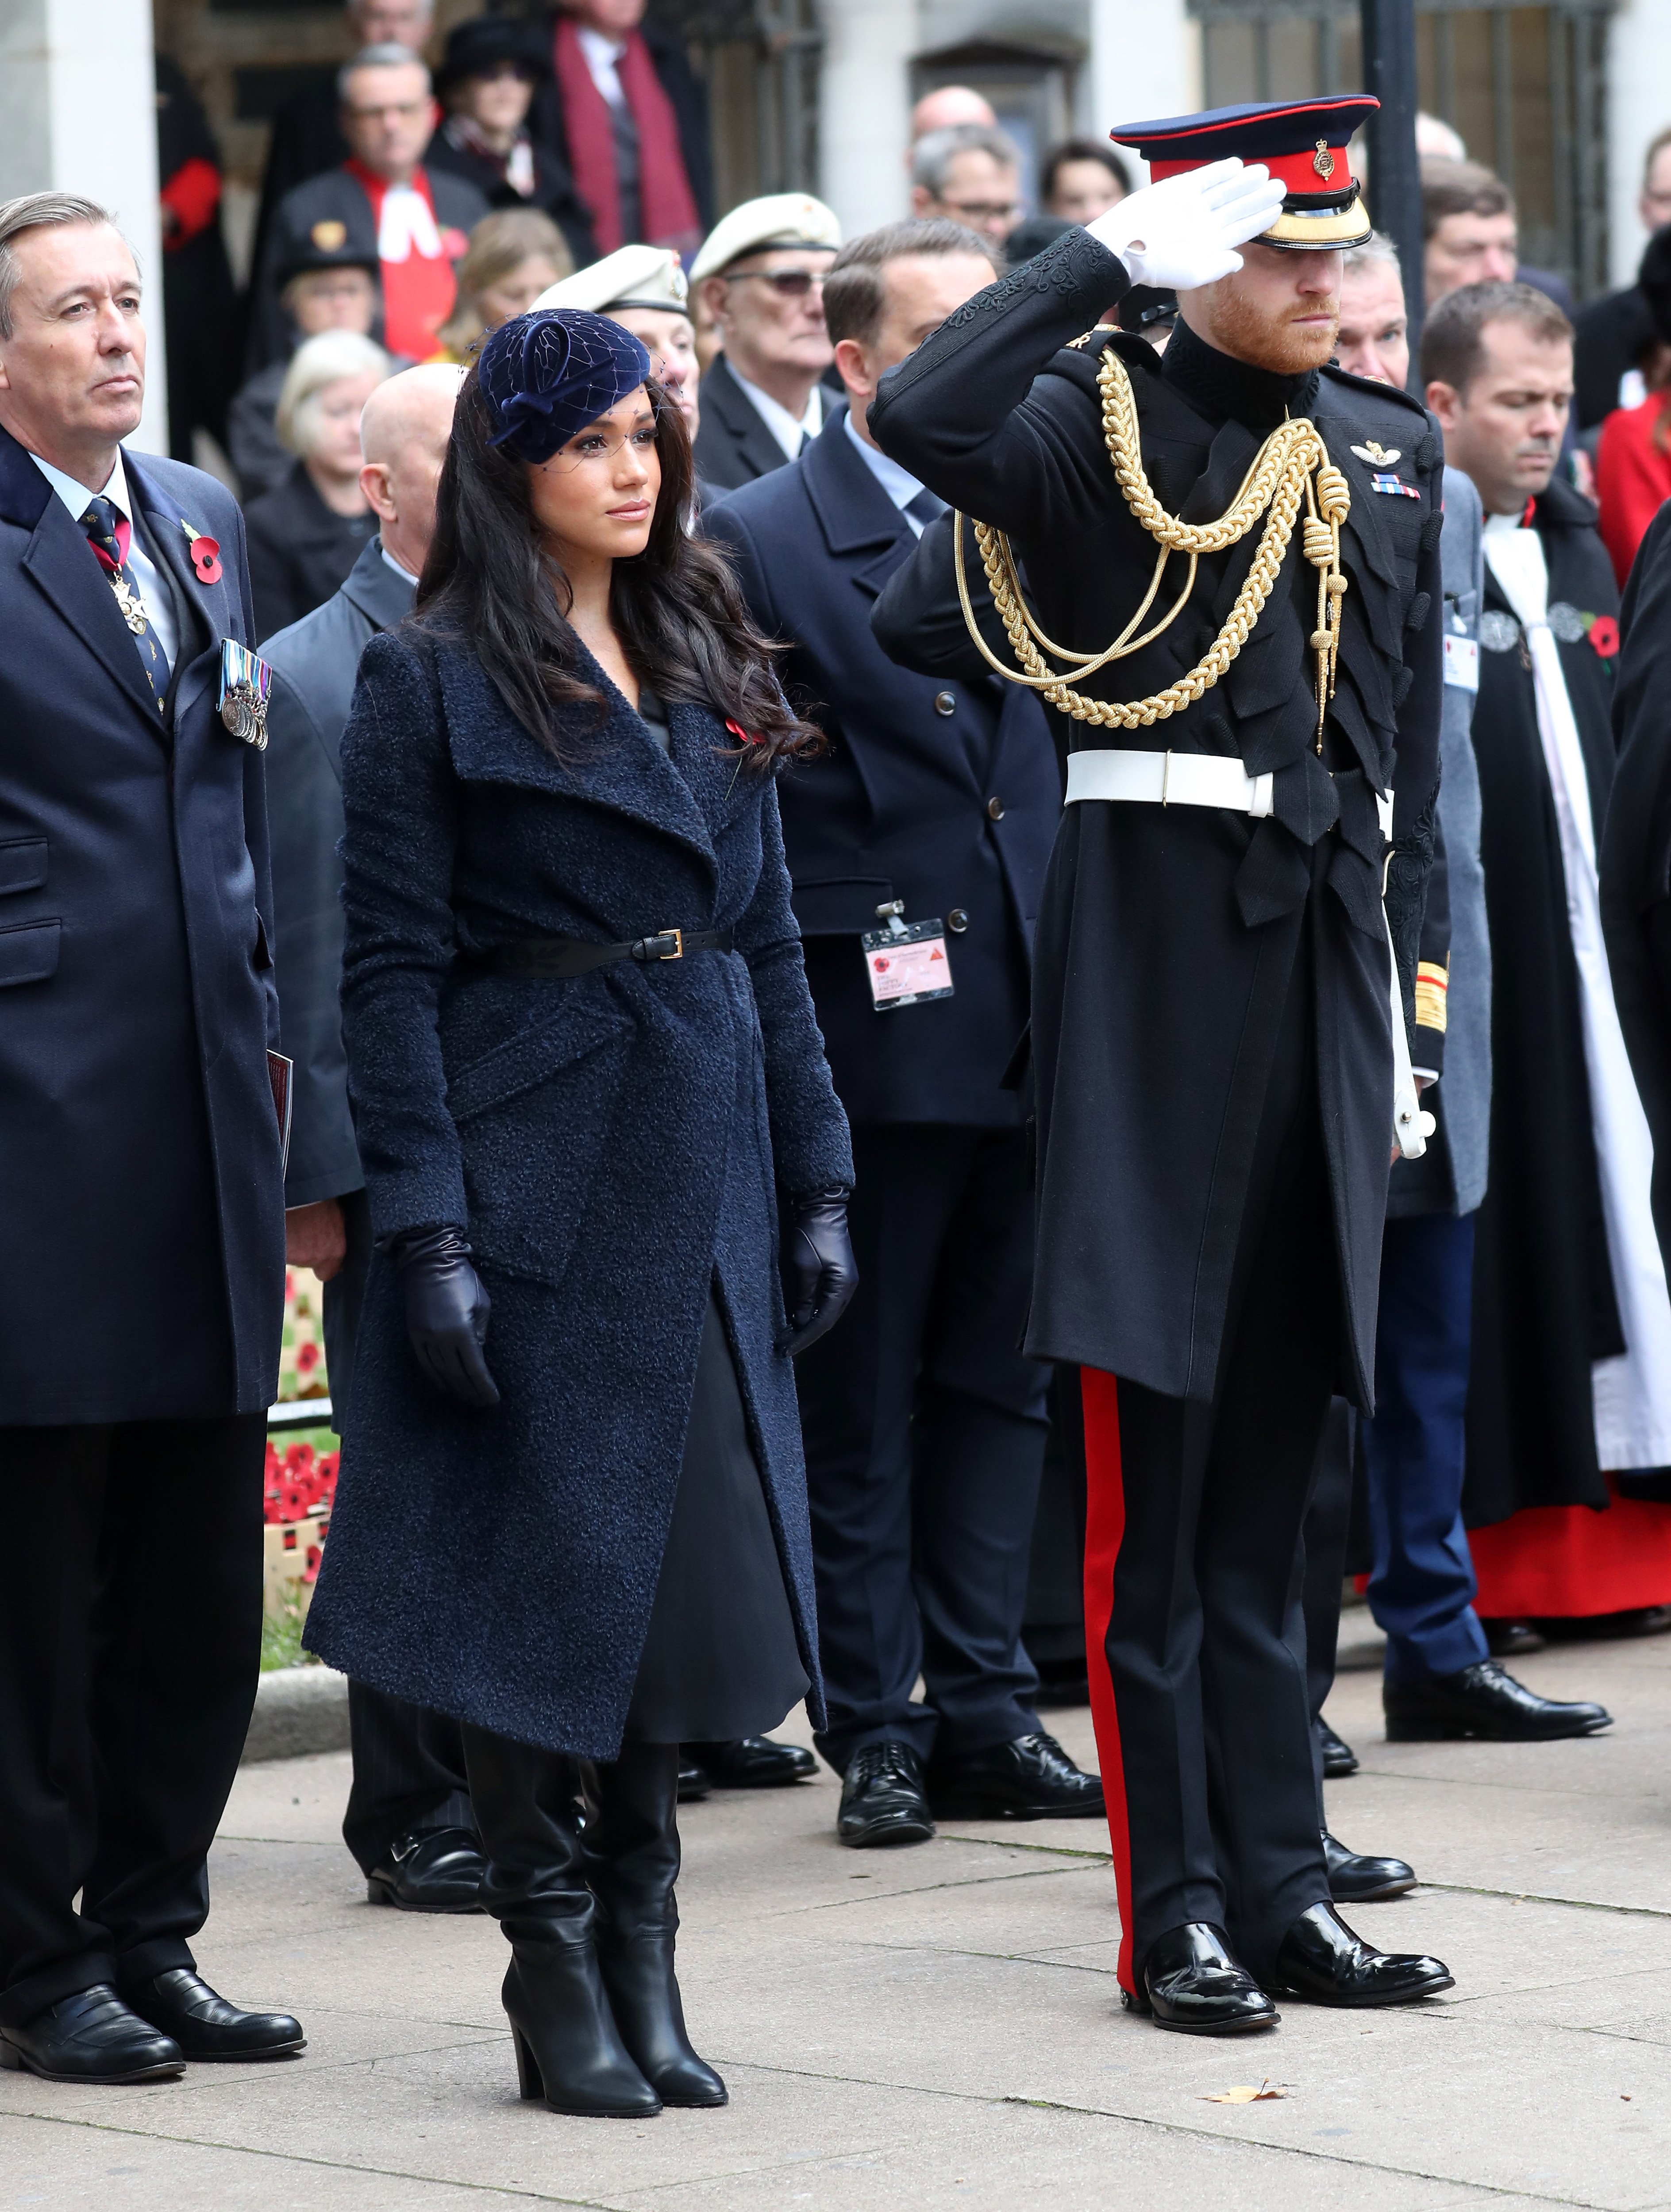 Meghan Markle and Prince Harry attend the 91st Field of Remembrance at Westminster Abbey on November 07, 2019, in London, England. | Source: Getty Images.